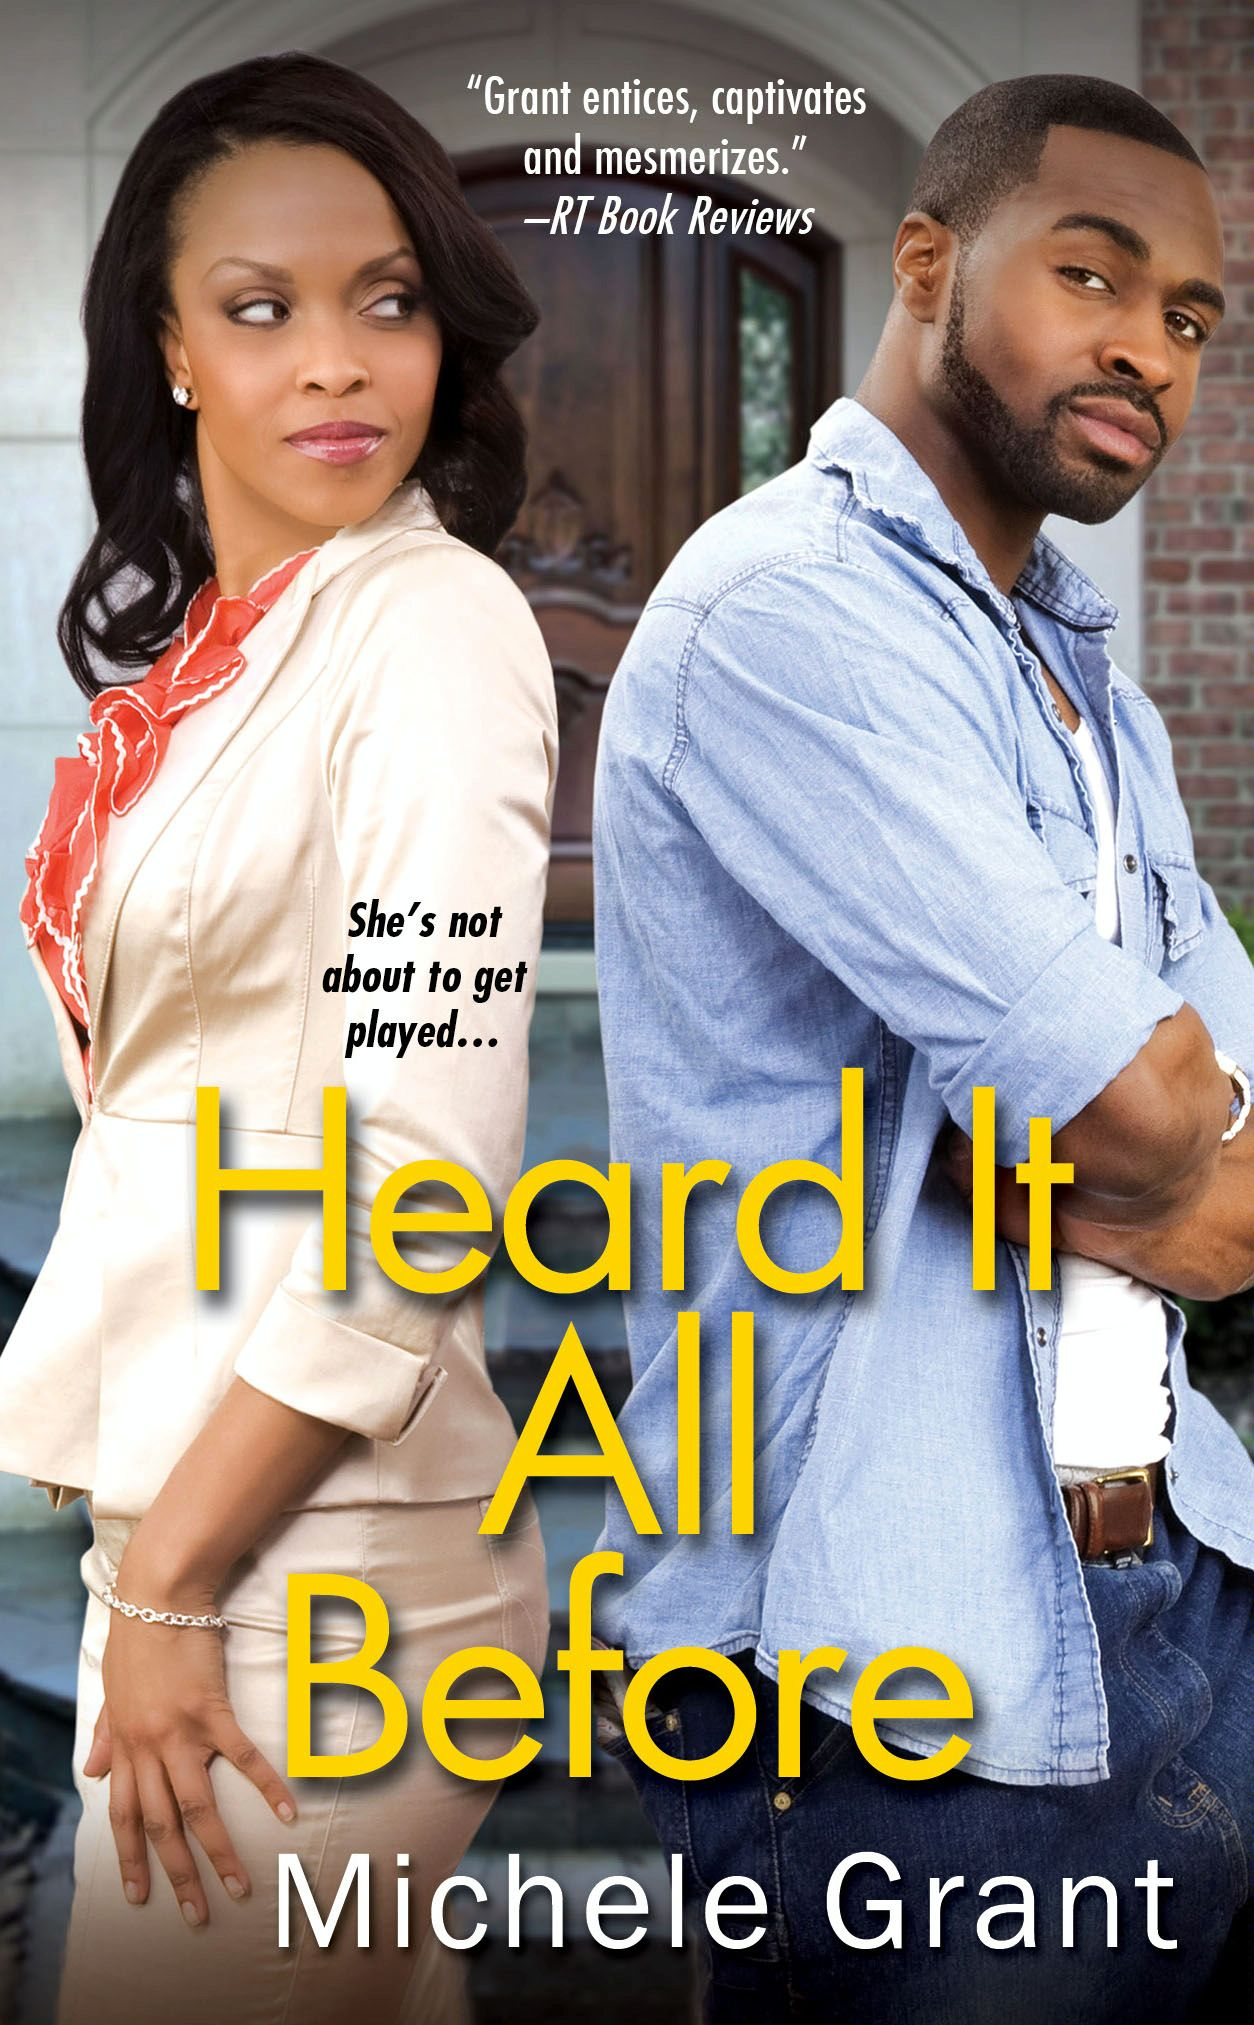 Heard It All Before By: Michele Grant